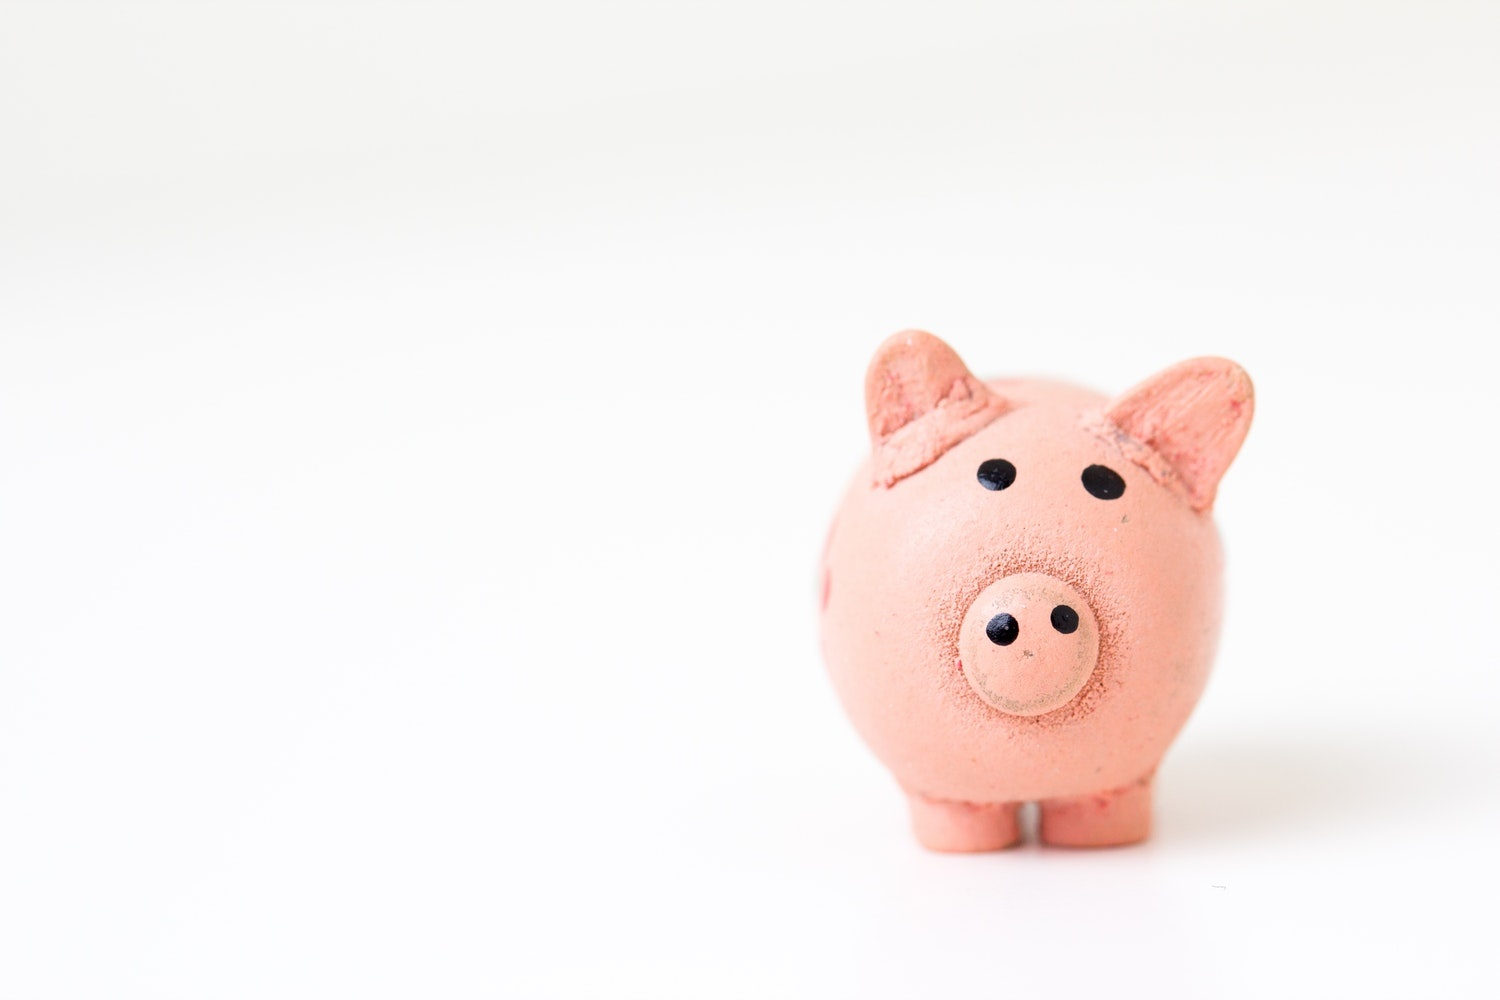 Piggy bank in front of white background.